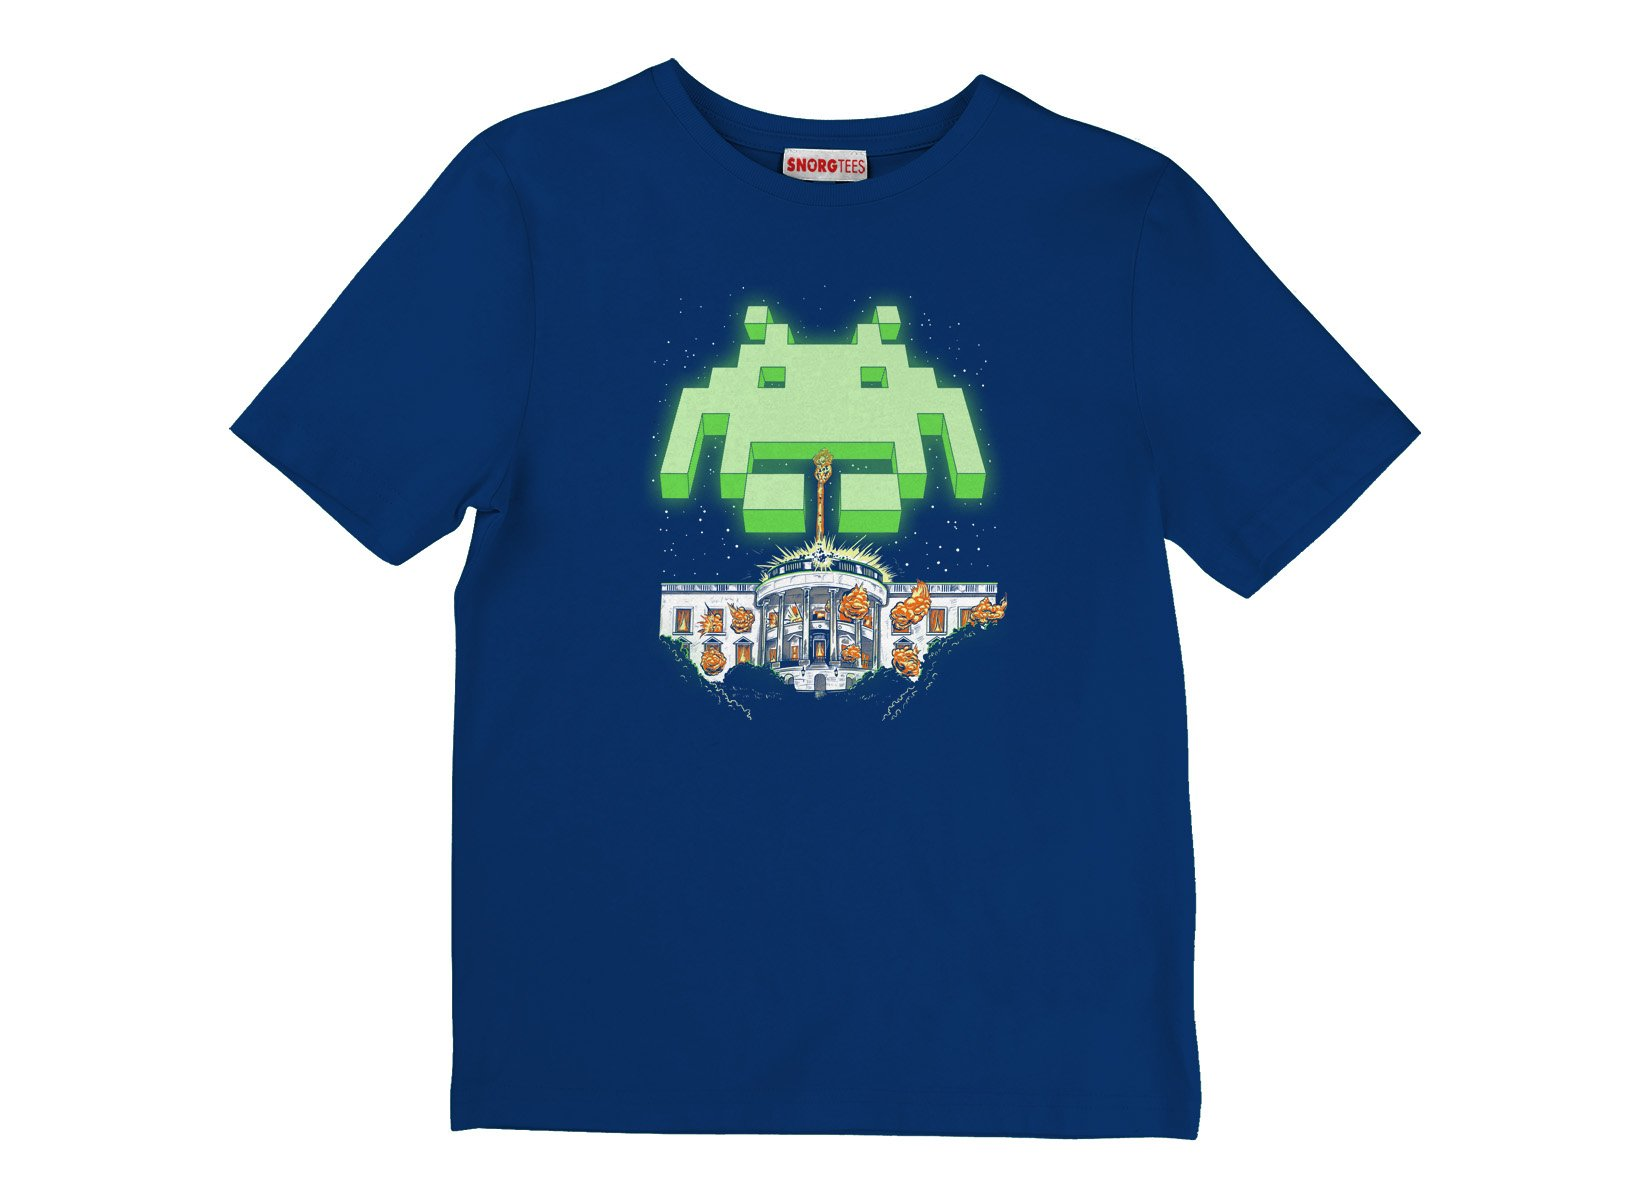 Invader Day on Kids T-Shirt